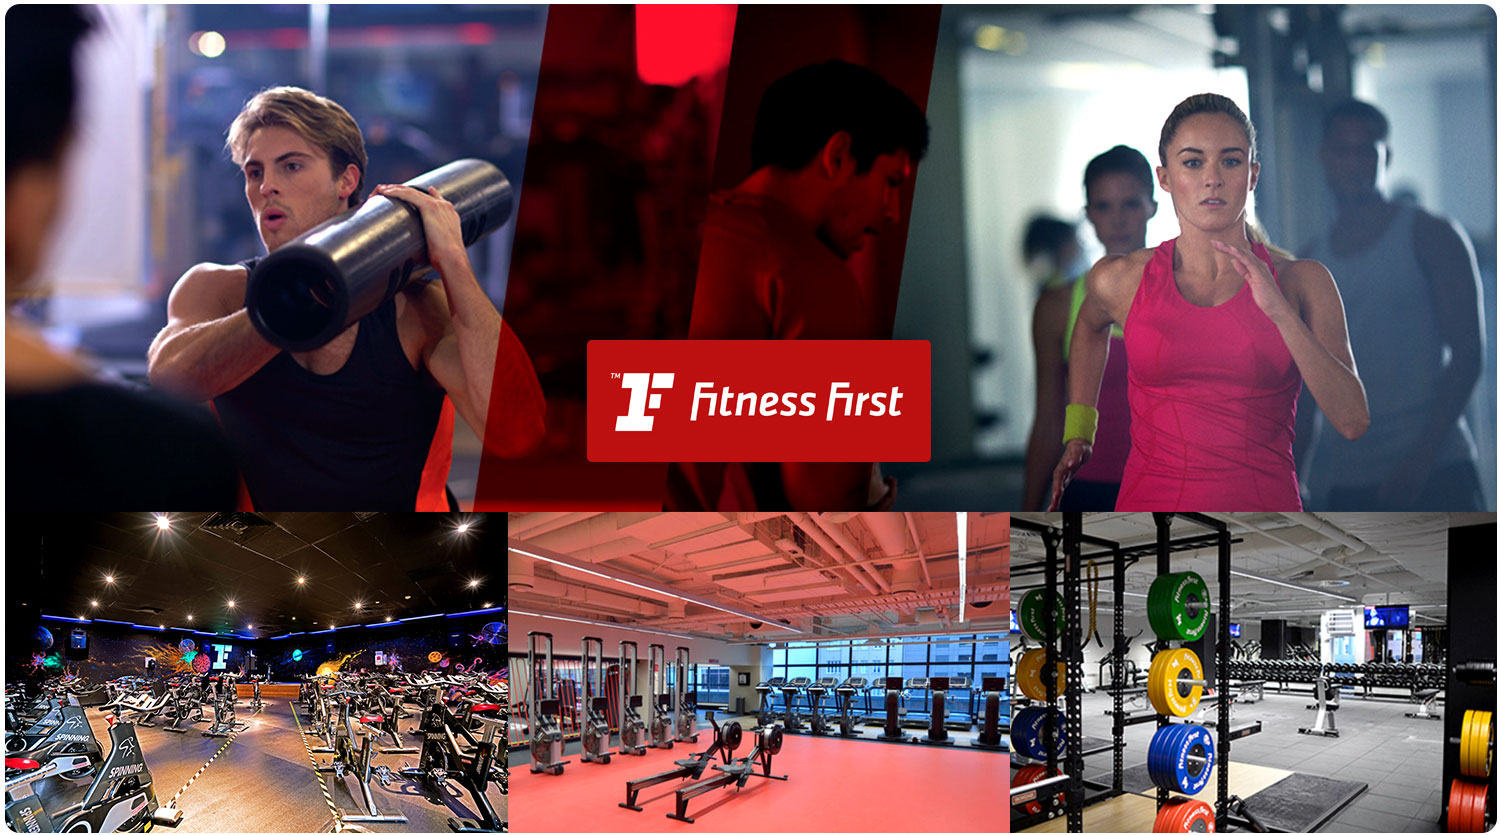 Start your Fitness Journey with Fitness First with only $14.95 for 14 days at Fitness First Carindale QLD. Experience our first class gym and freestyle classes inc. Zumba, Pilates, Yoga, HIIT, Les Mills and more. Take the first step with Fitness First Carindale QLD.